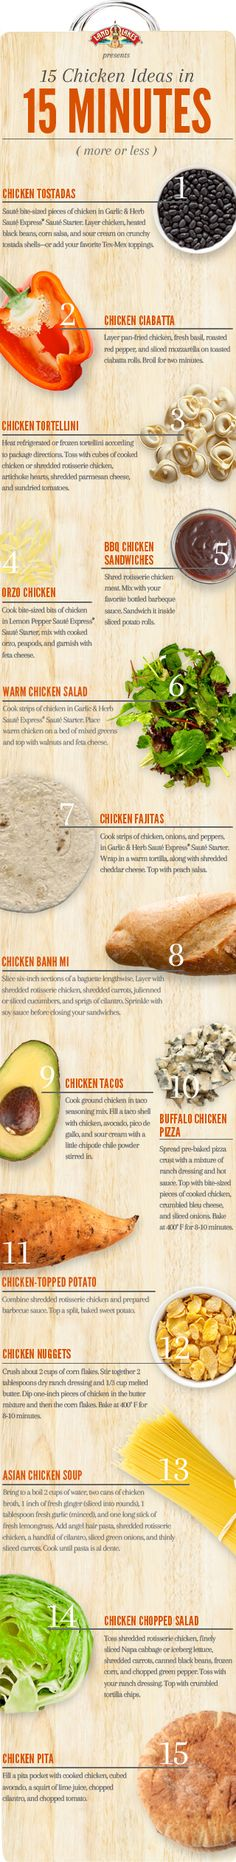 15 Chicken Recipes in 15 Minutes (More or Less) | Land O'Lakes